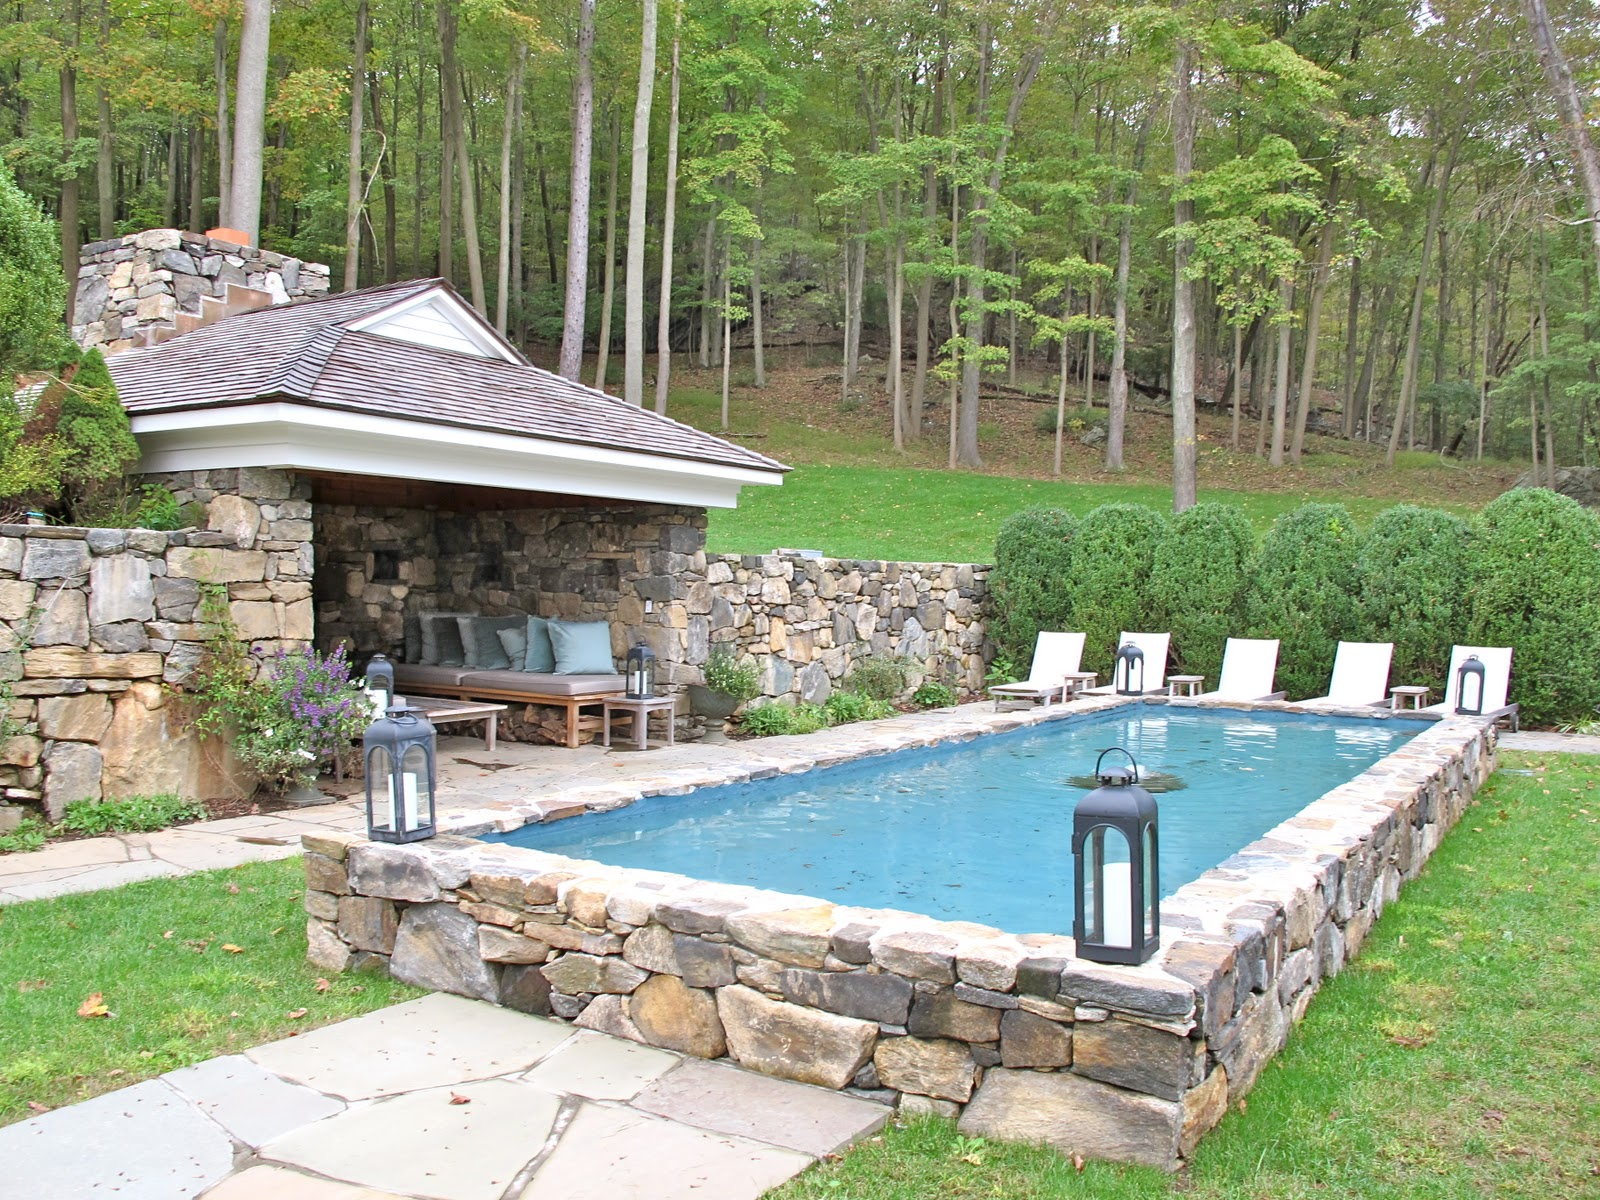 Partially Inground Pool | Partial Inground Pools | Semi Inground Pool Ideas